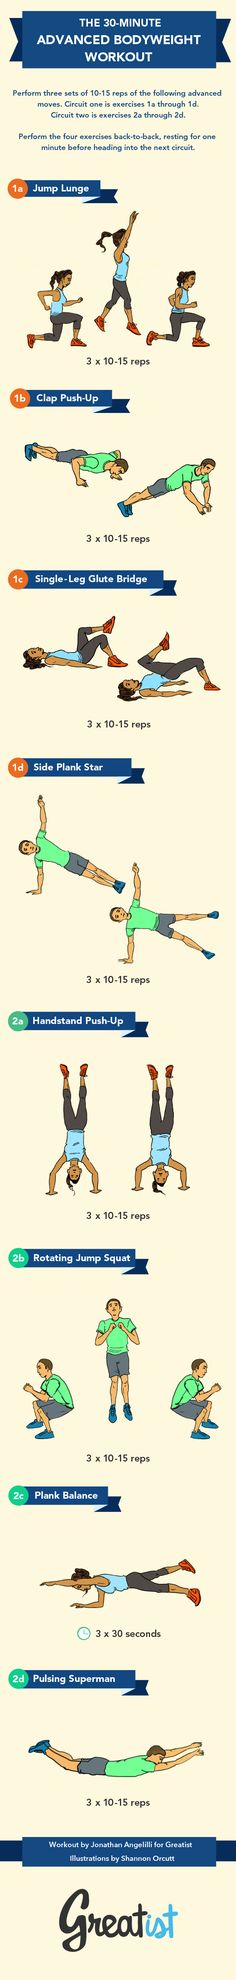 A quick bodyweight workout when you don't wanna go to the gym and have no equipment in sight. Awesome. #basketballinfographic